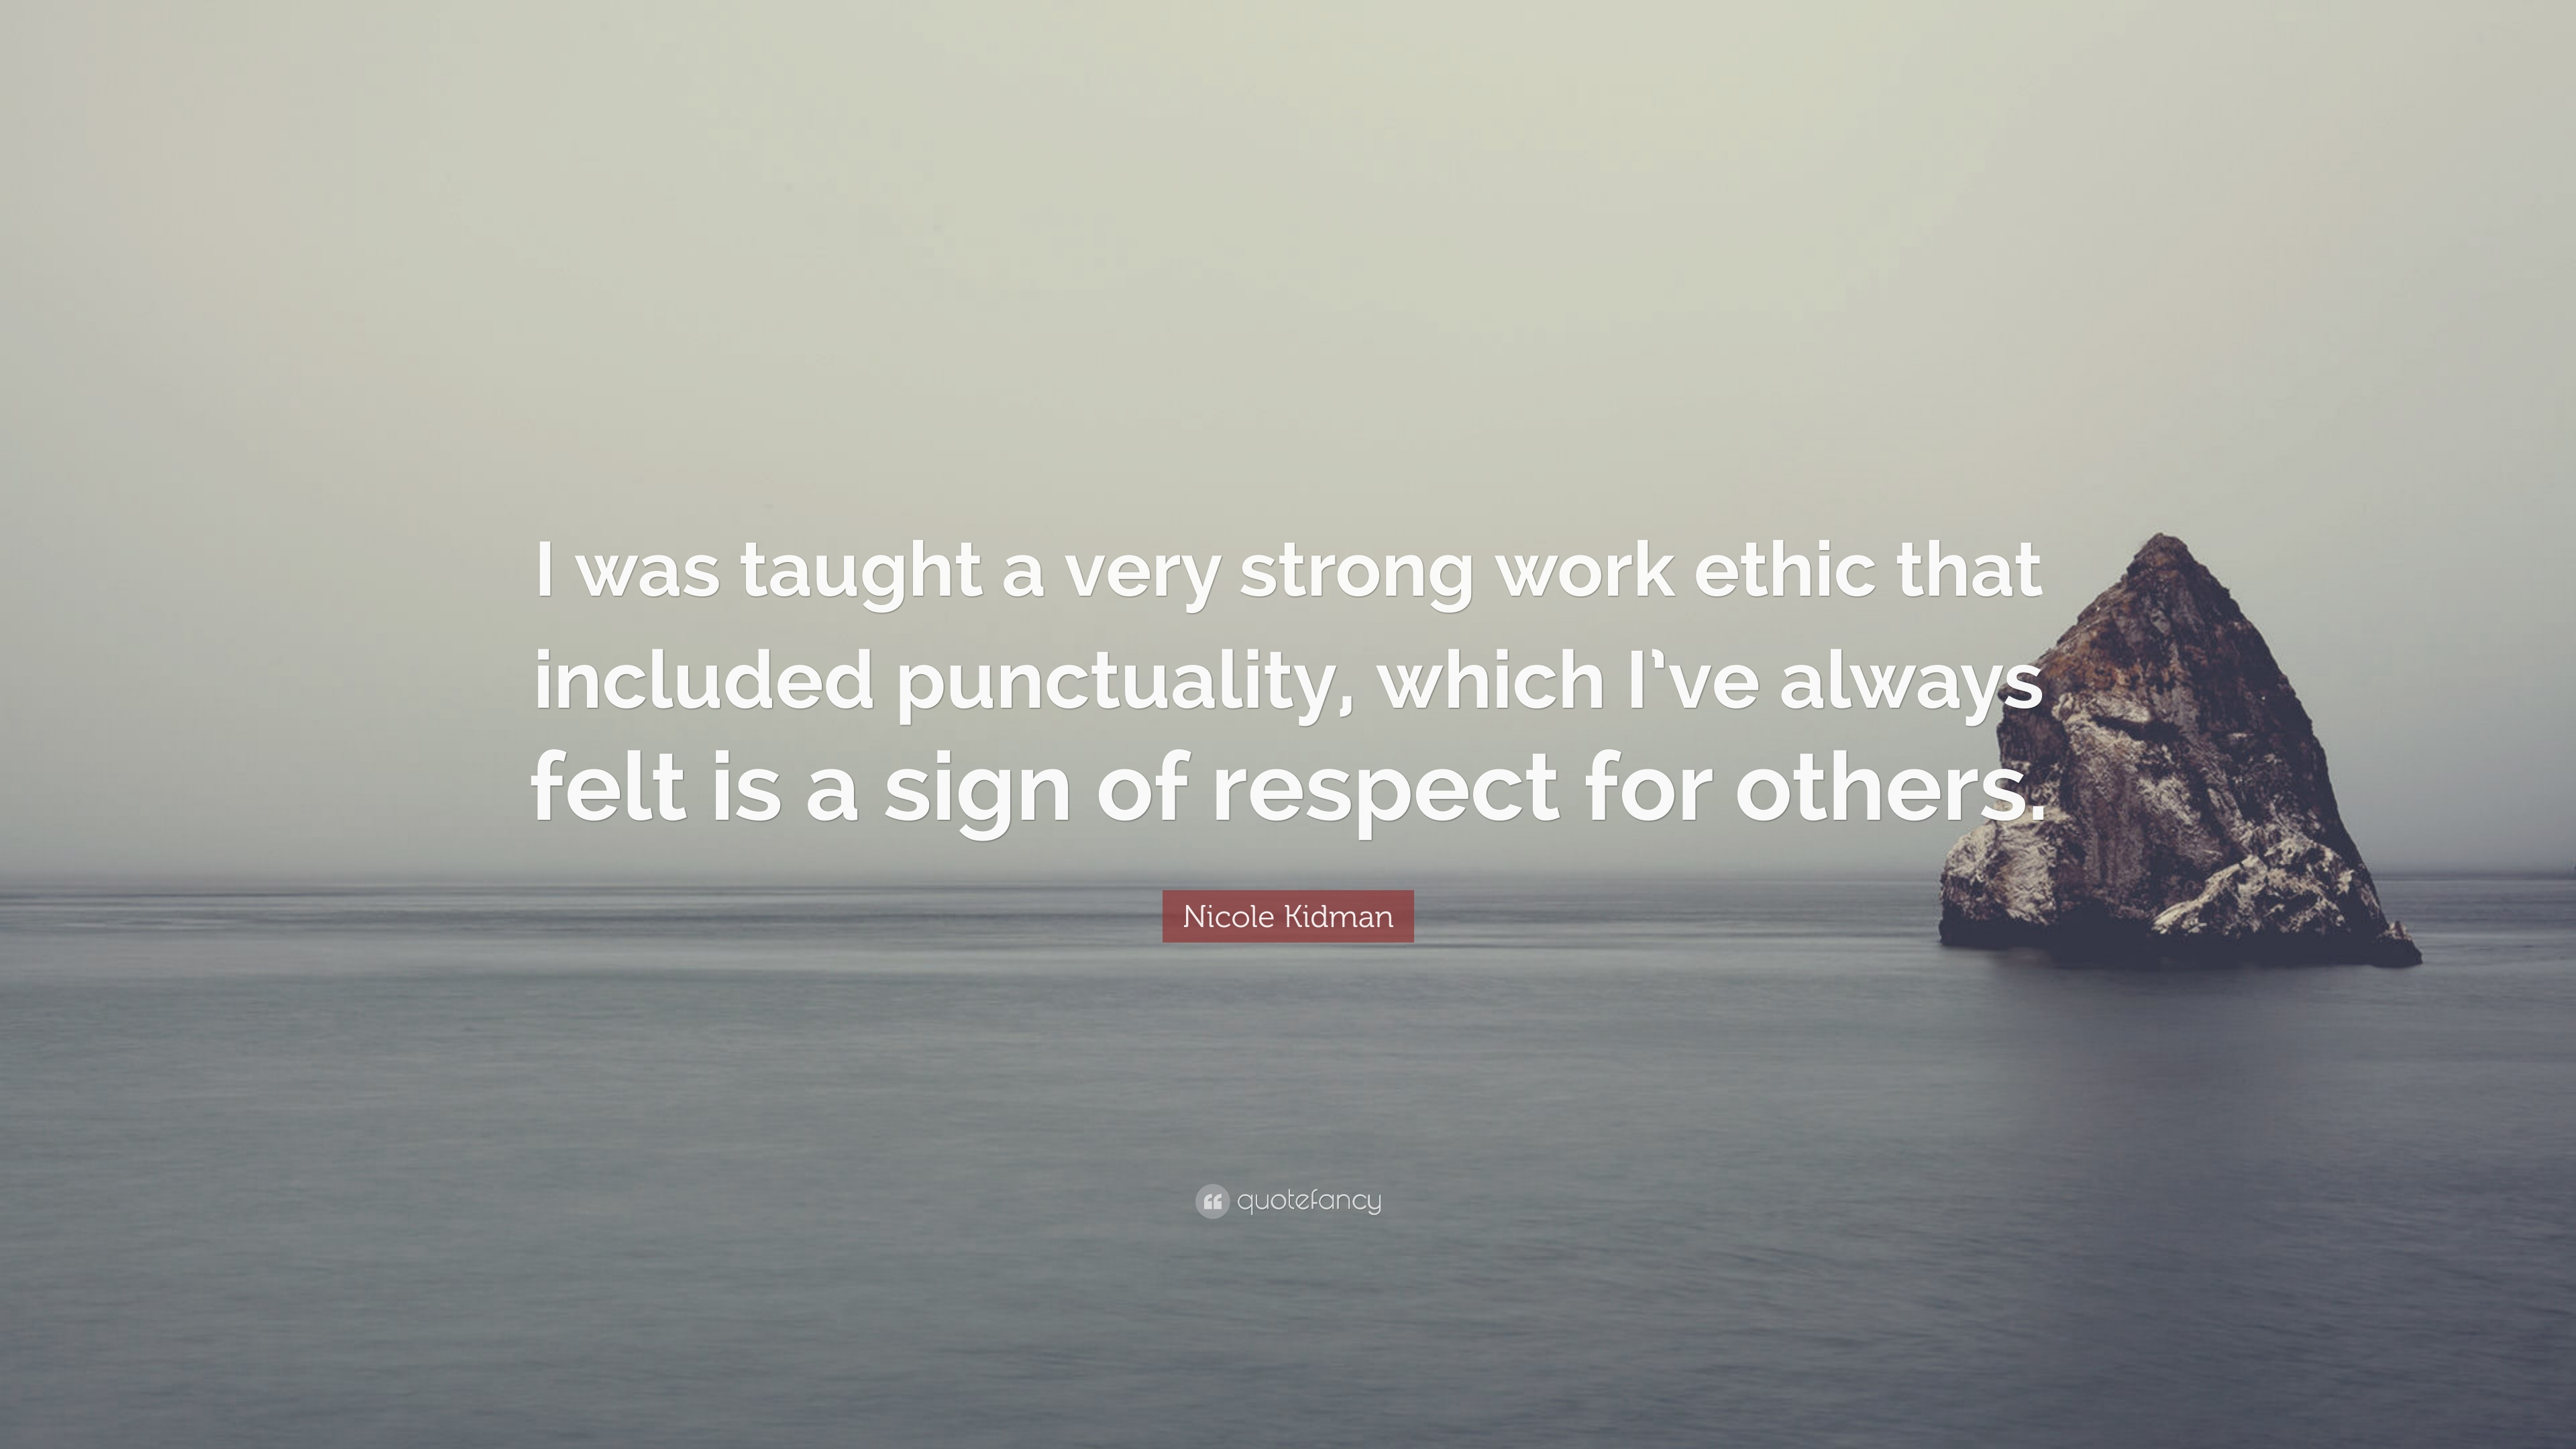 nicole kidman quote i was taught a very strong work ethic that nicole kidman quote i was taught a very strong work ethic that included punctuality